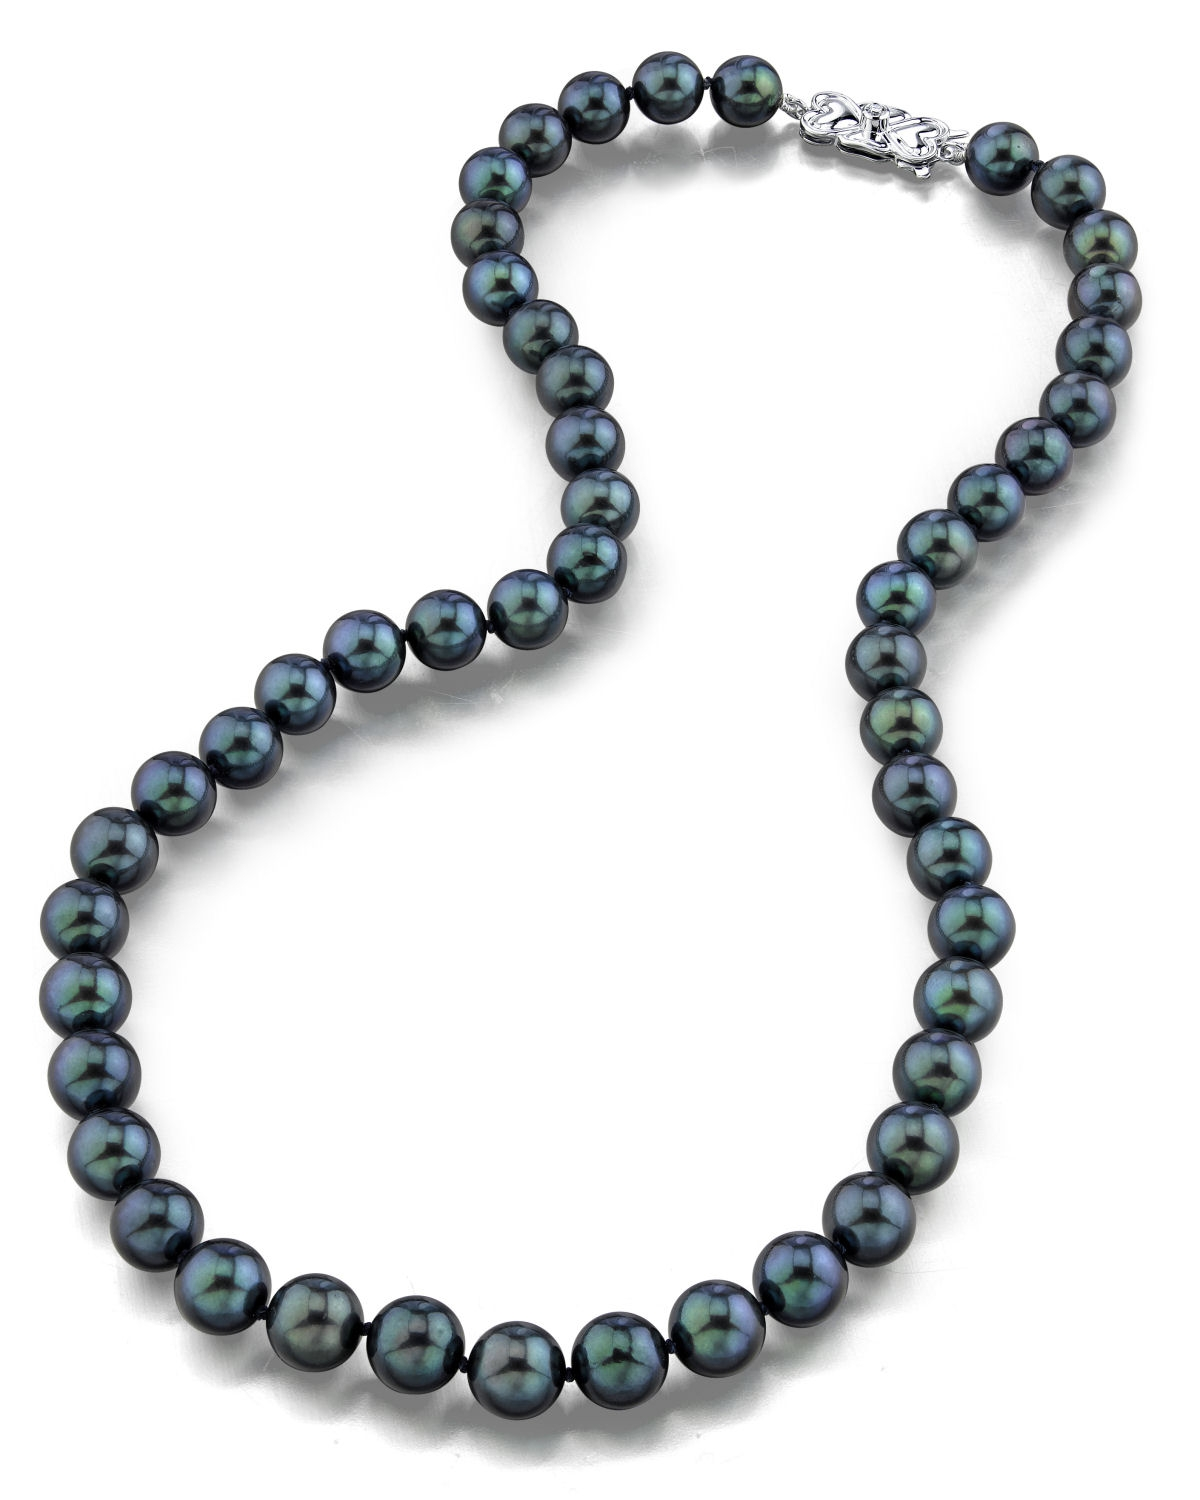 8 0 japanese akoya black pearl necklace aaa quality. Black Bedroom Furniture Sets. Home Design Ideas